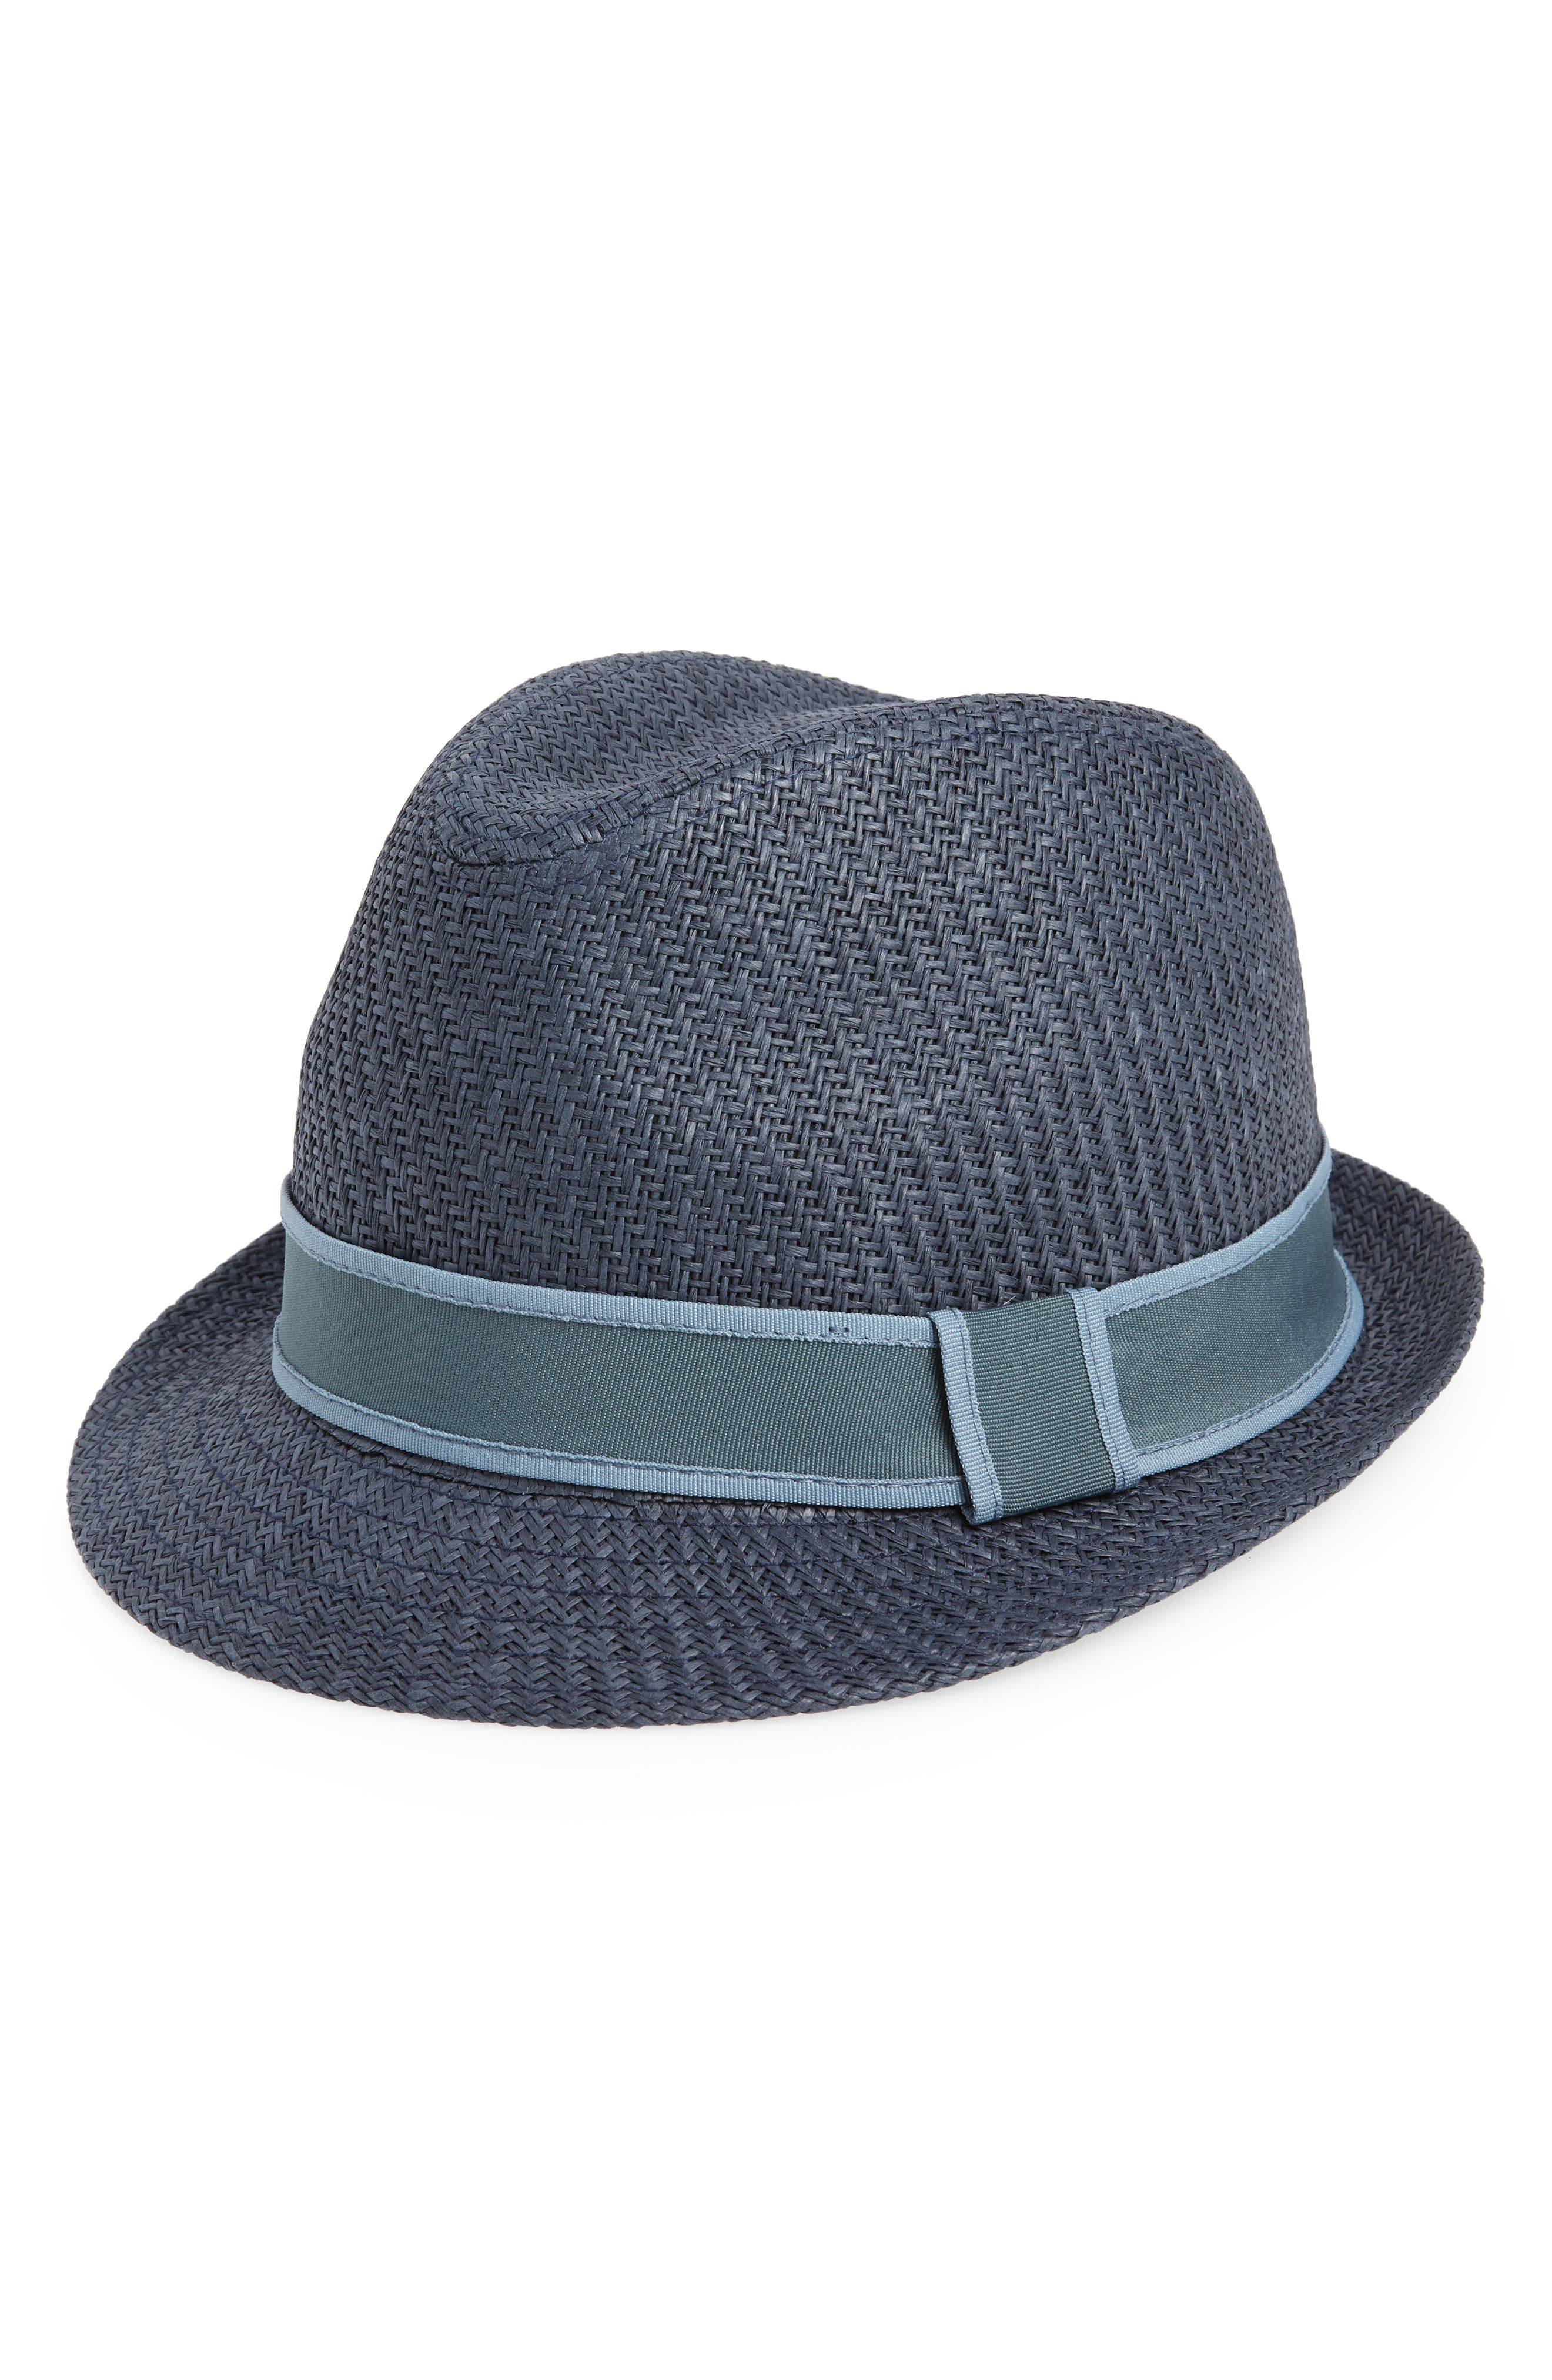 Goorin Killian Fedora,                             Main thumbnail 1, color,                             BLUE